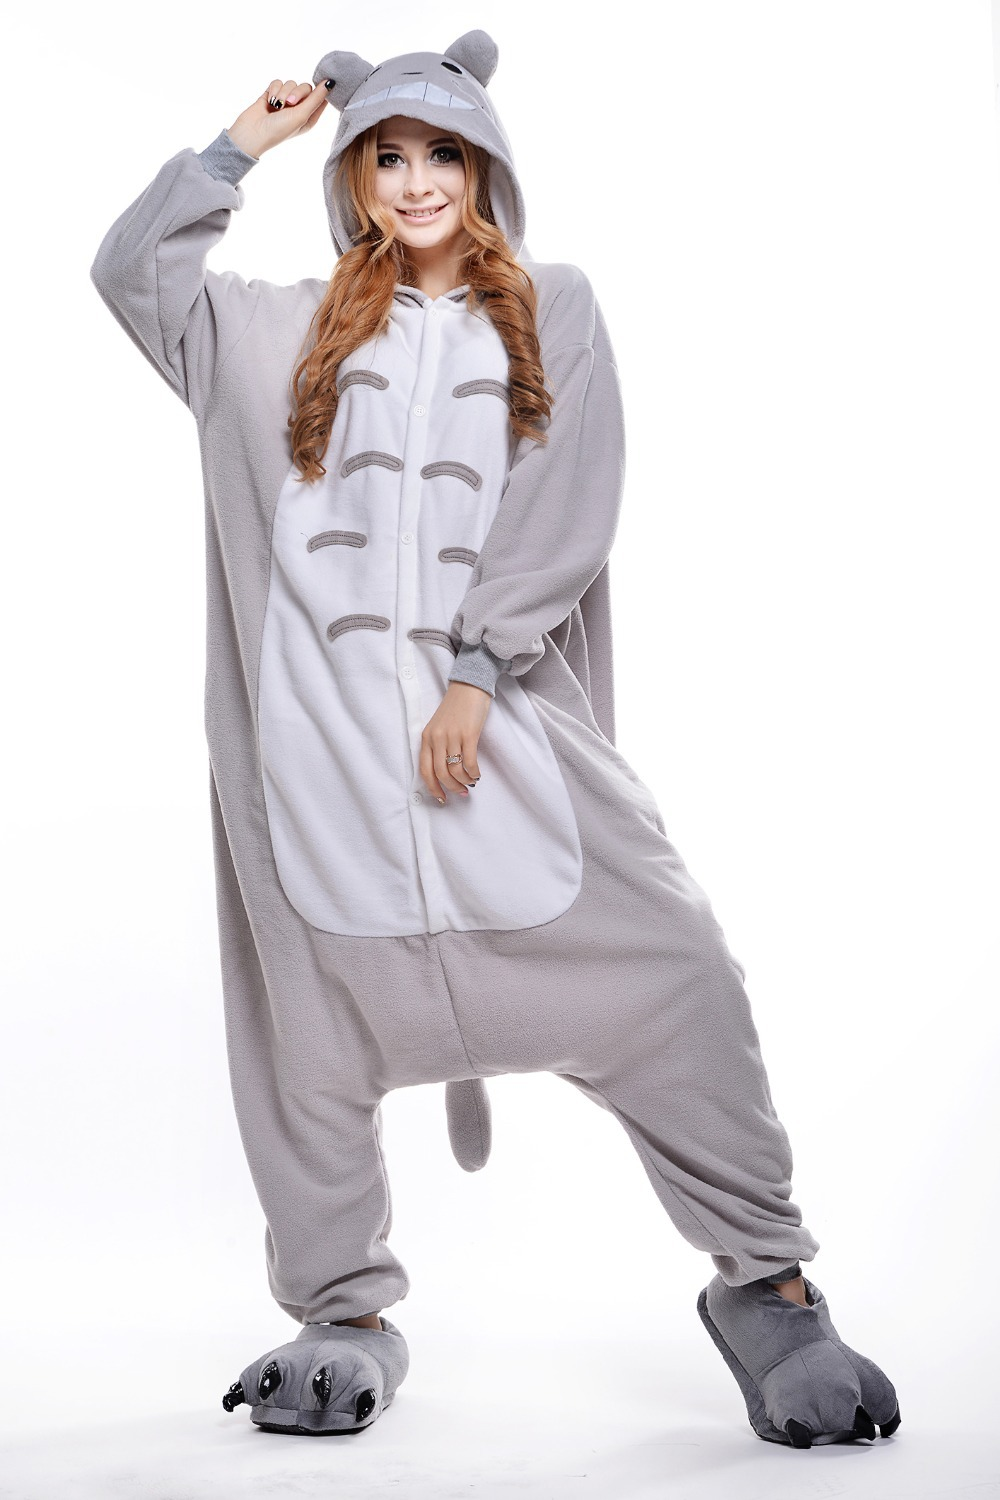 bd6bf28462be Get Quotations · Totoro Costume  Plus Size Halloween Costume for Women  Mens  Onesie  Fancy Anime Cosplay